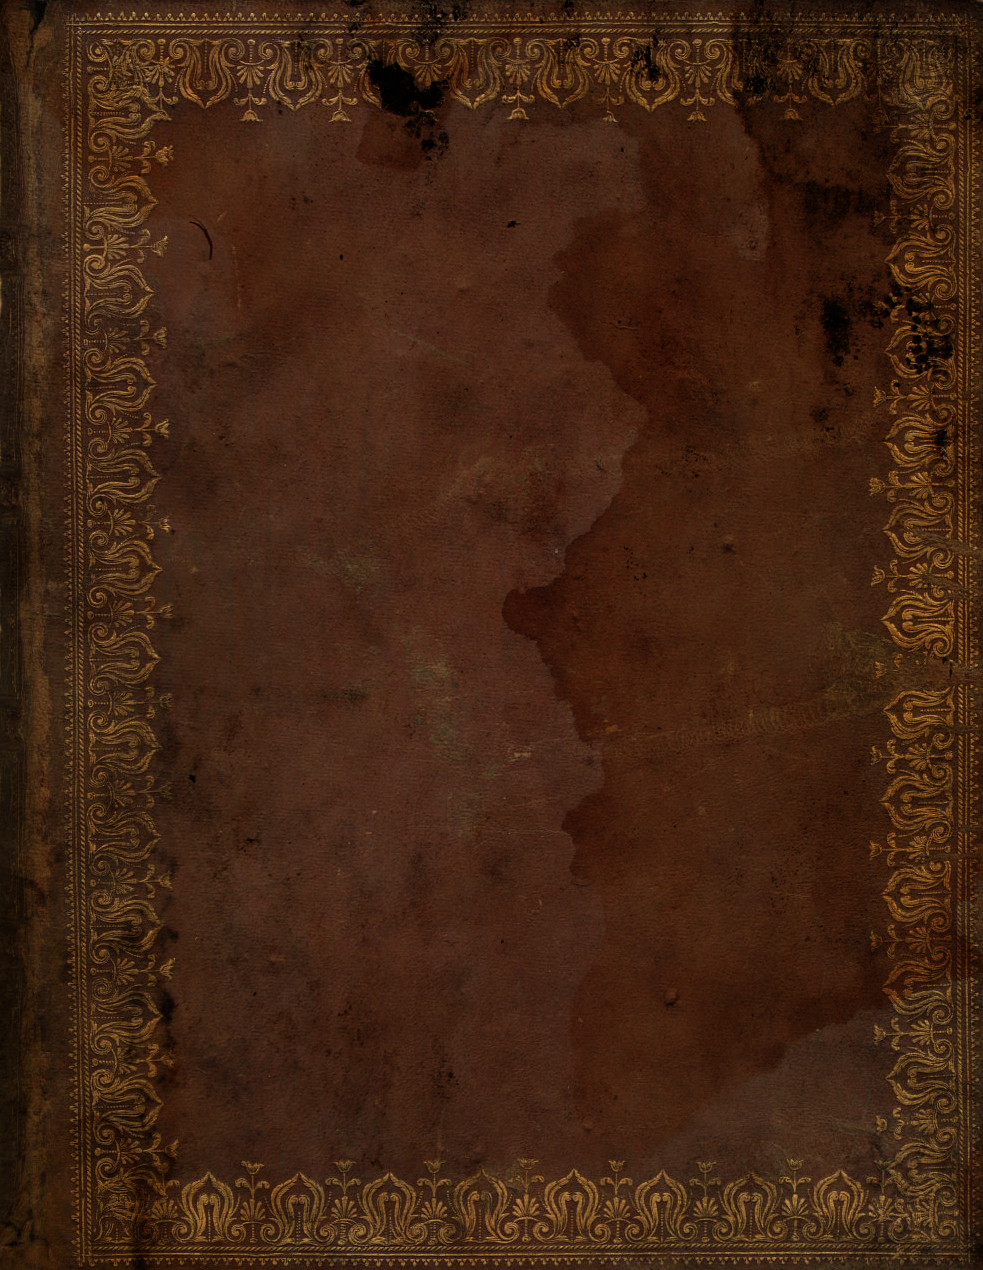 Book Cover Template Paint : Free grungy front book cover texture l t